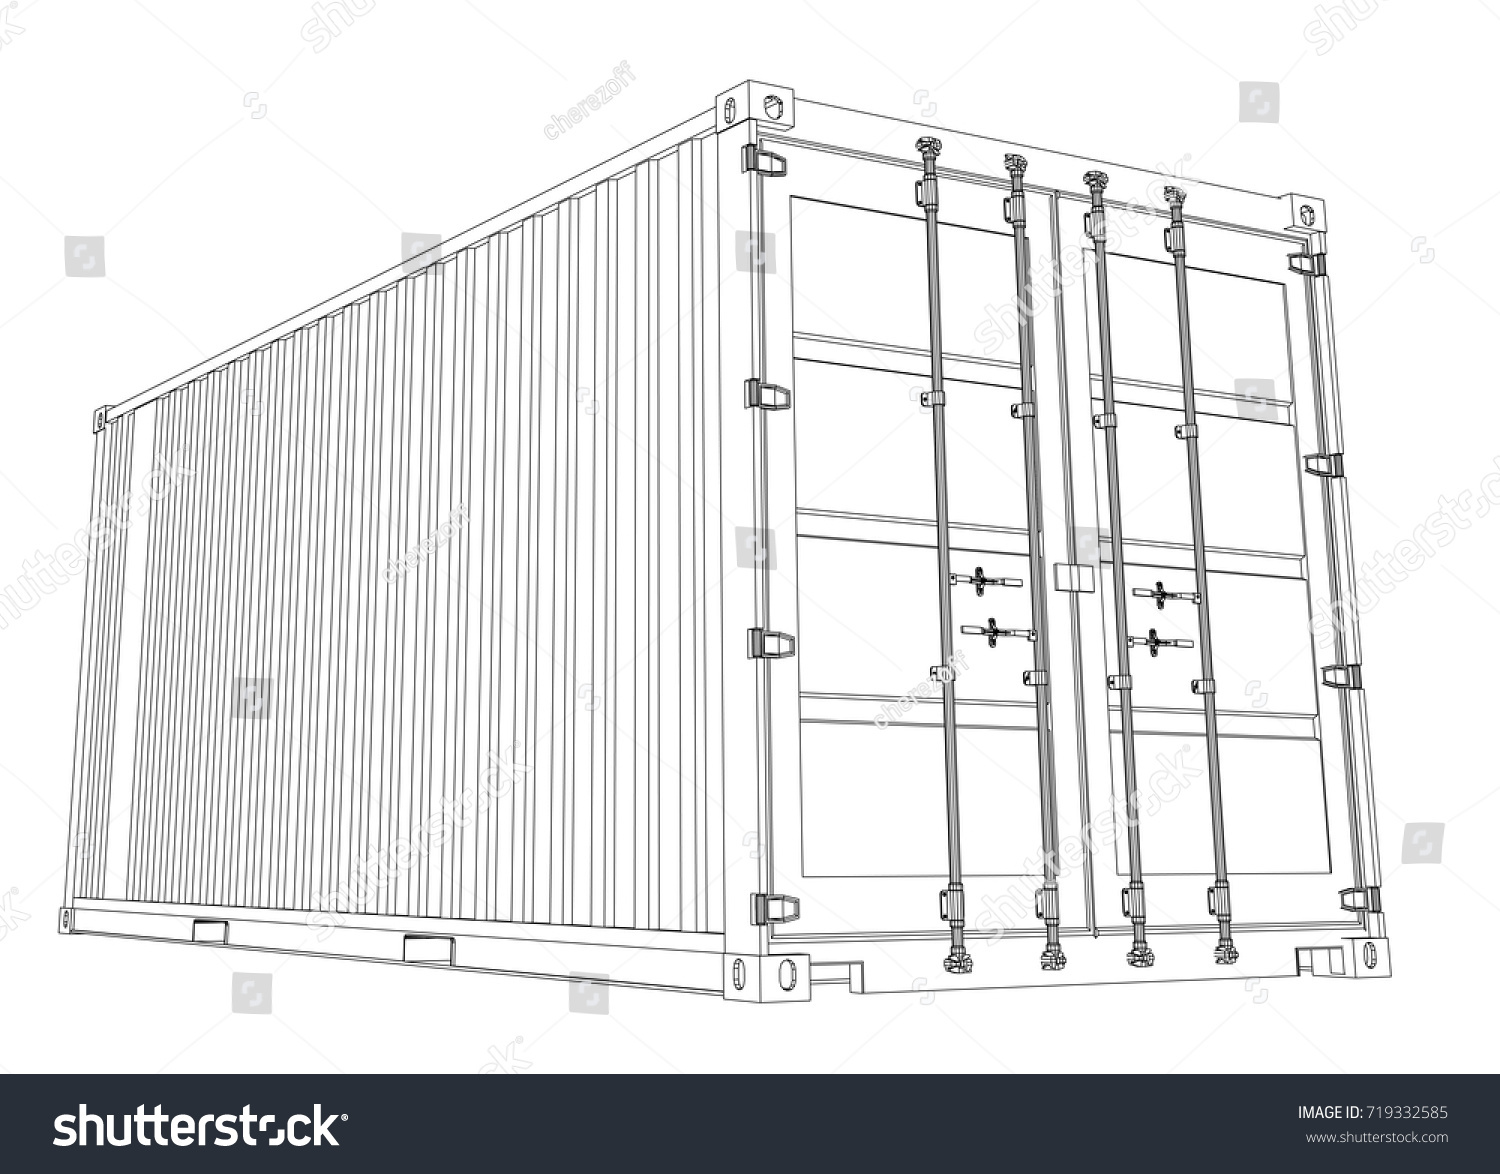 Cargo Container Wireframe Style Vector Rendering Stock Vector ...